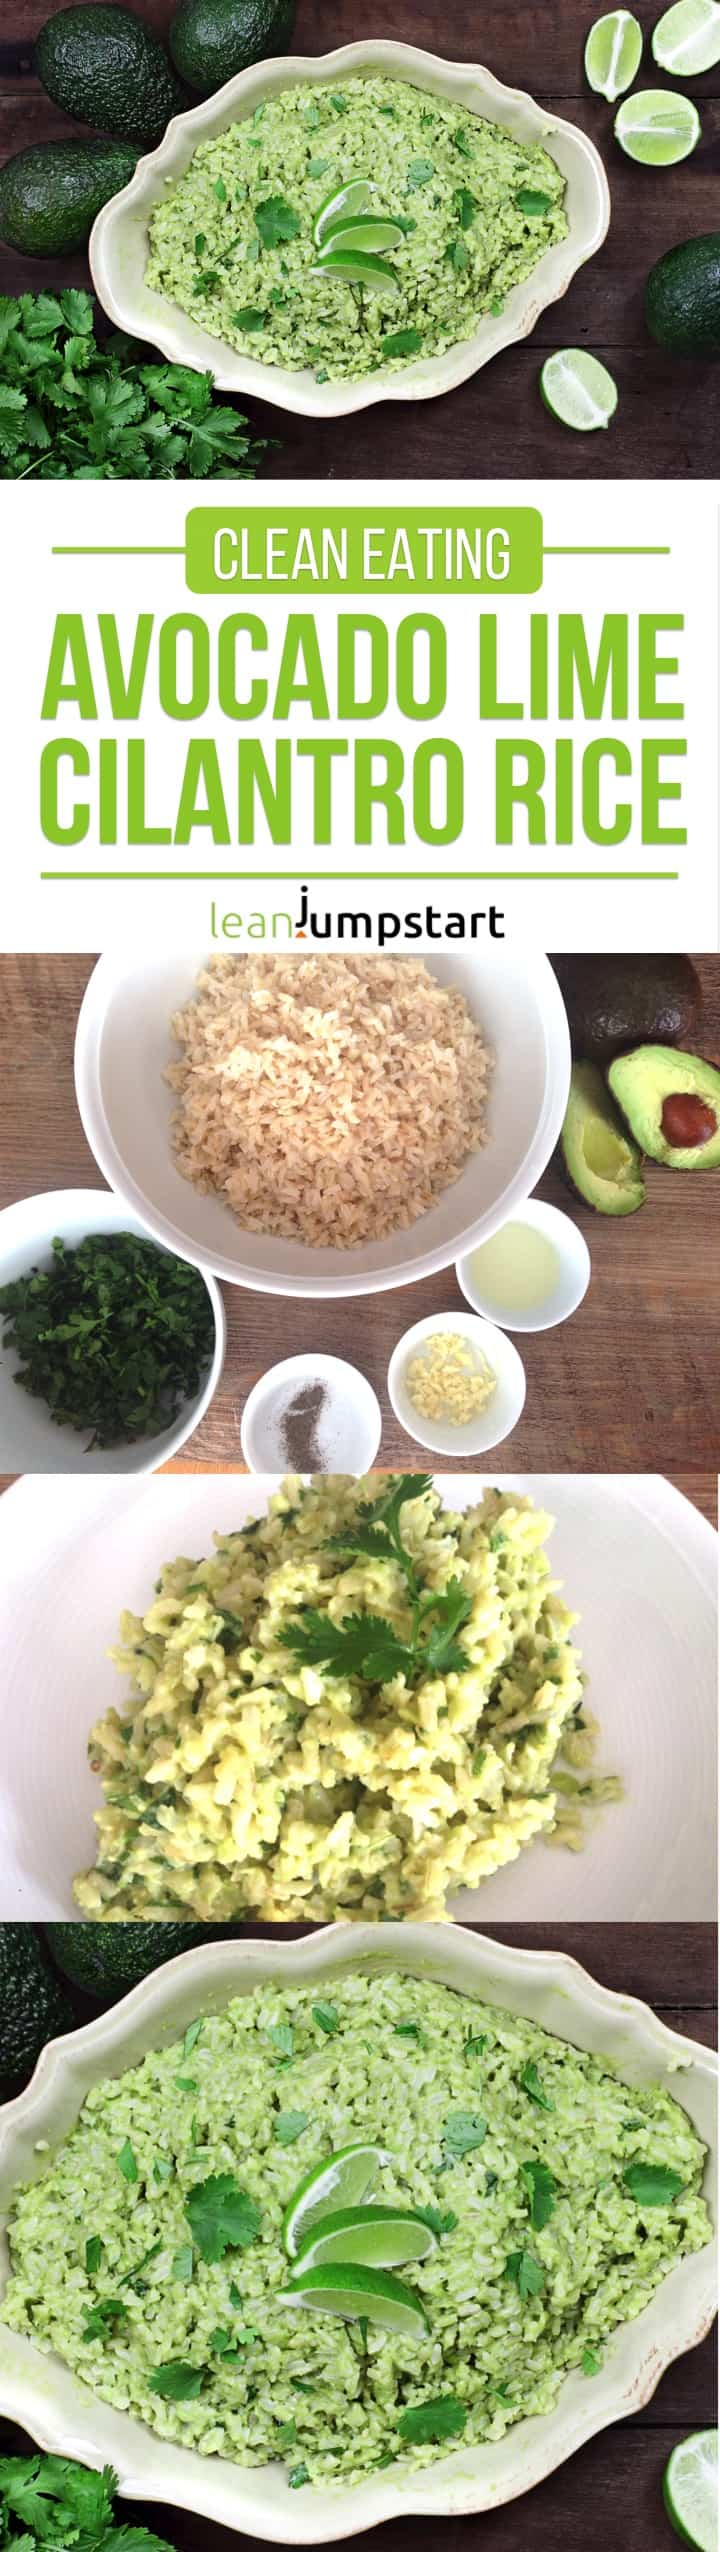 cilantro lime rice with avocado: a yummy and easy clean eating dish